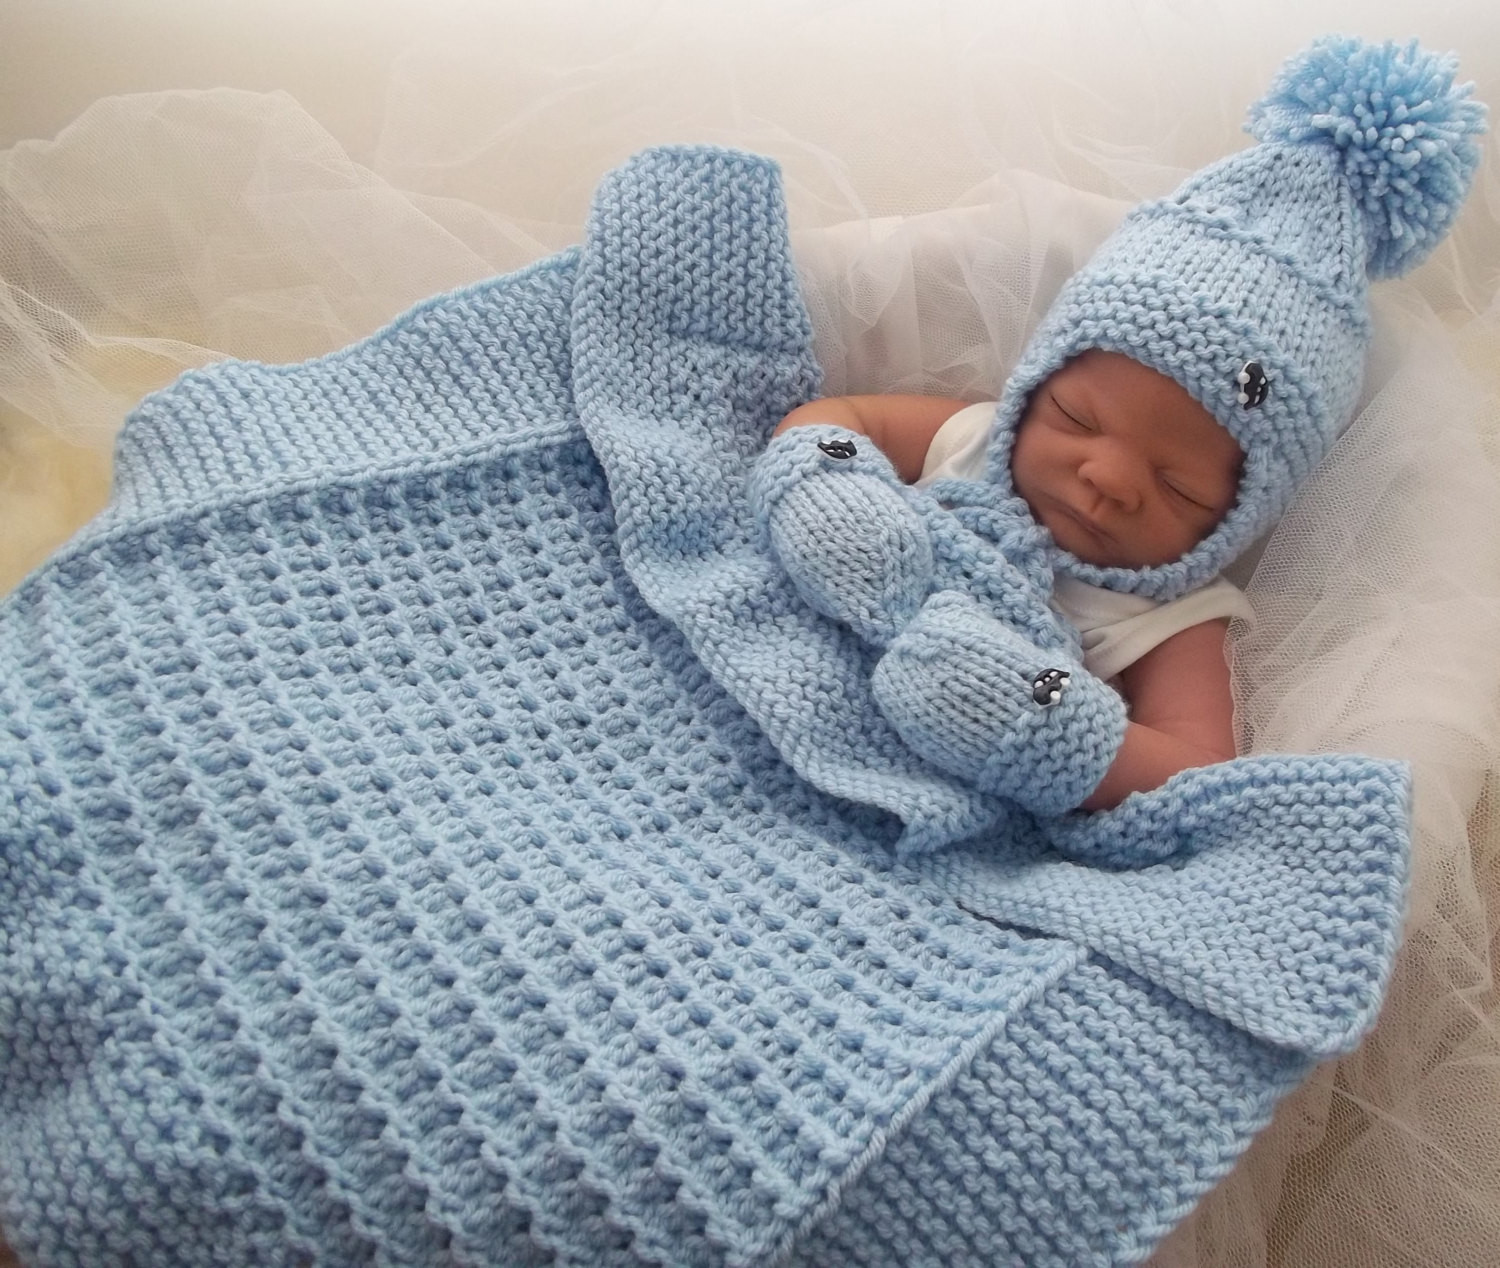 Knitting for Newborns Inspirational Baby Chunky Knitting Patterns to Crochet and Knit Of Awesome 41 Images Knitting for Newborns